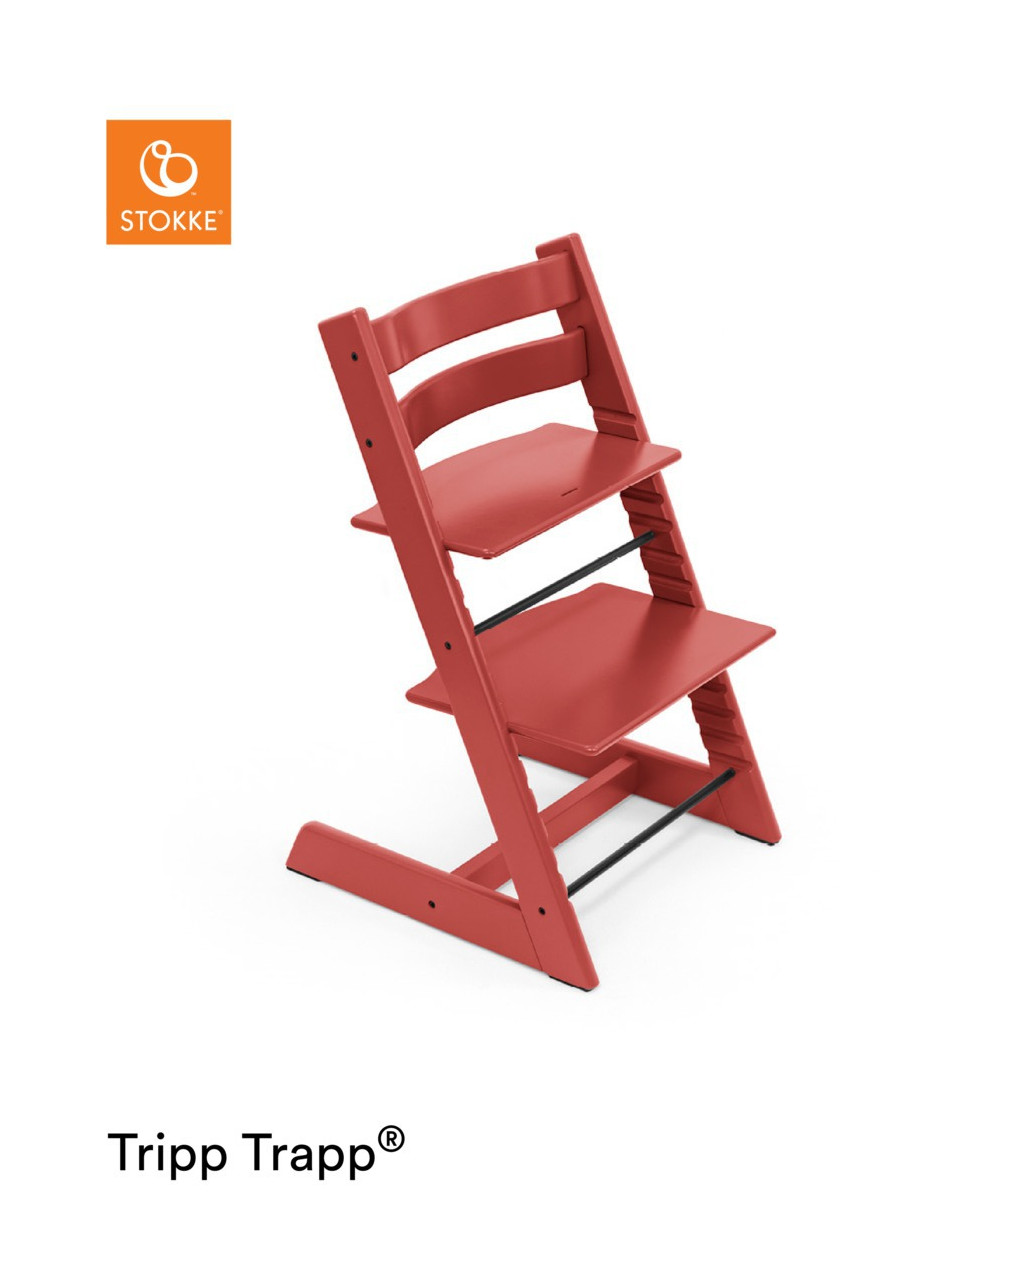 Tripp trapp® – warm red - Stokke